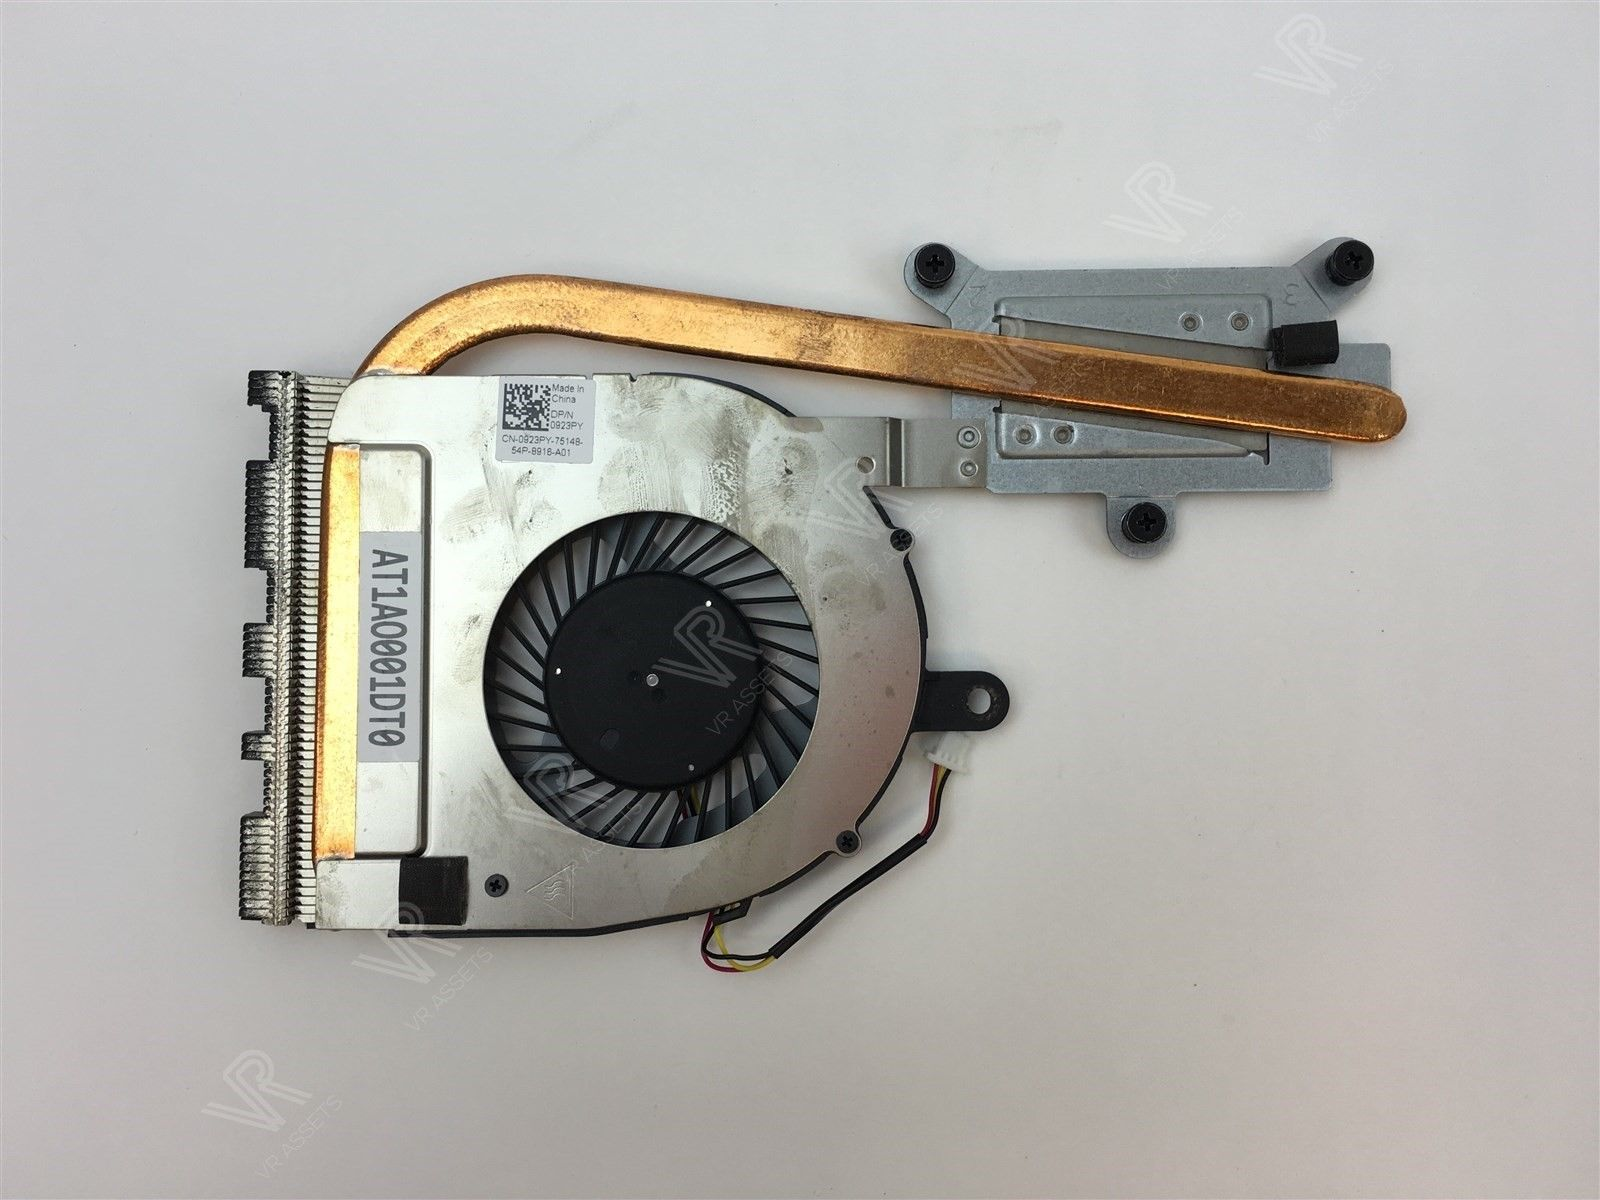 Genuine Dell Inspiron 15 5558 Laptop Heatsink Cooling Fan Assembly 923PY 0923PY